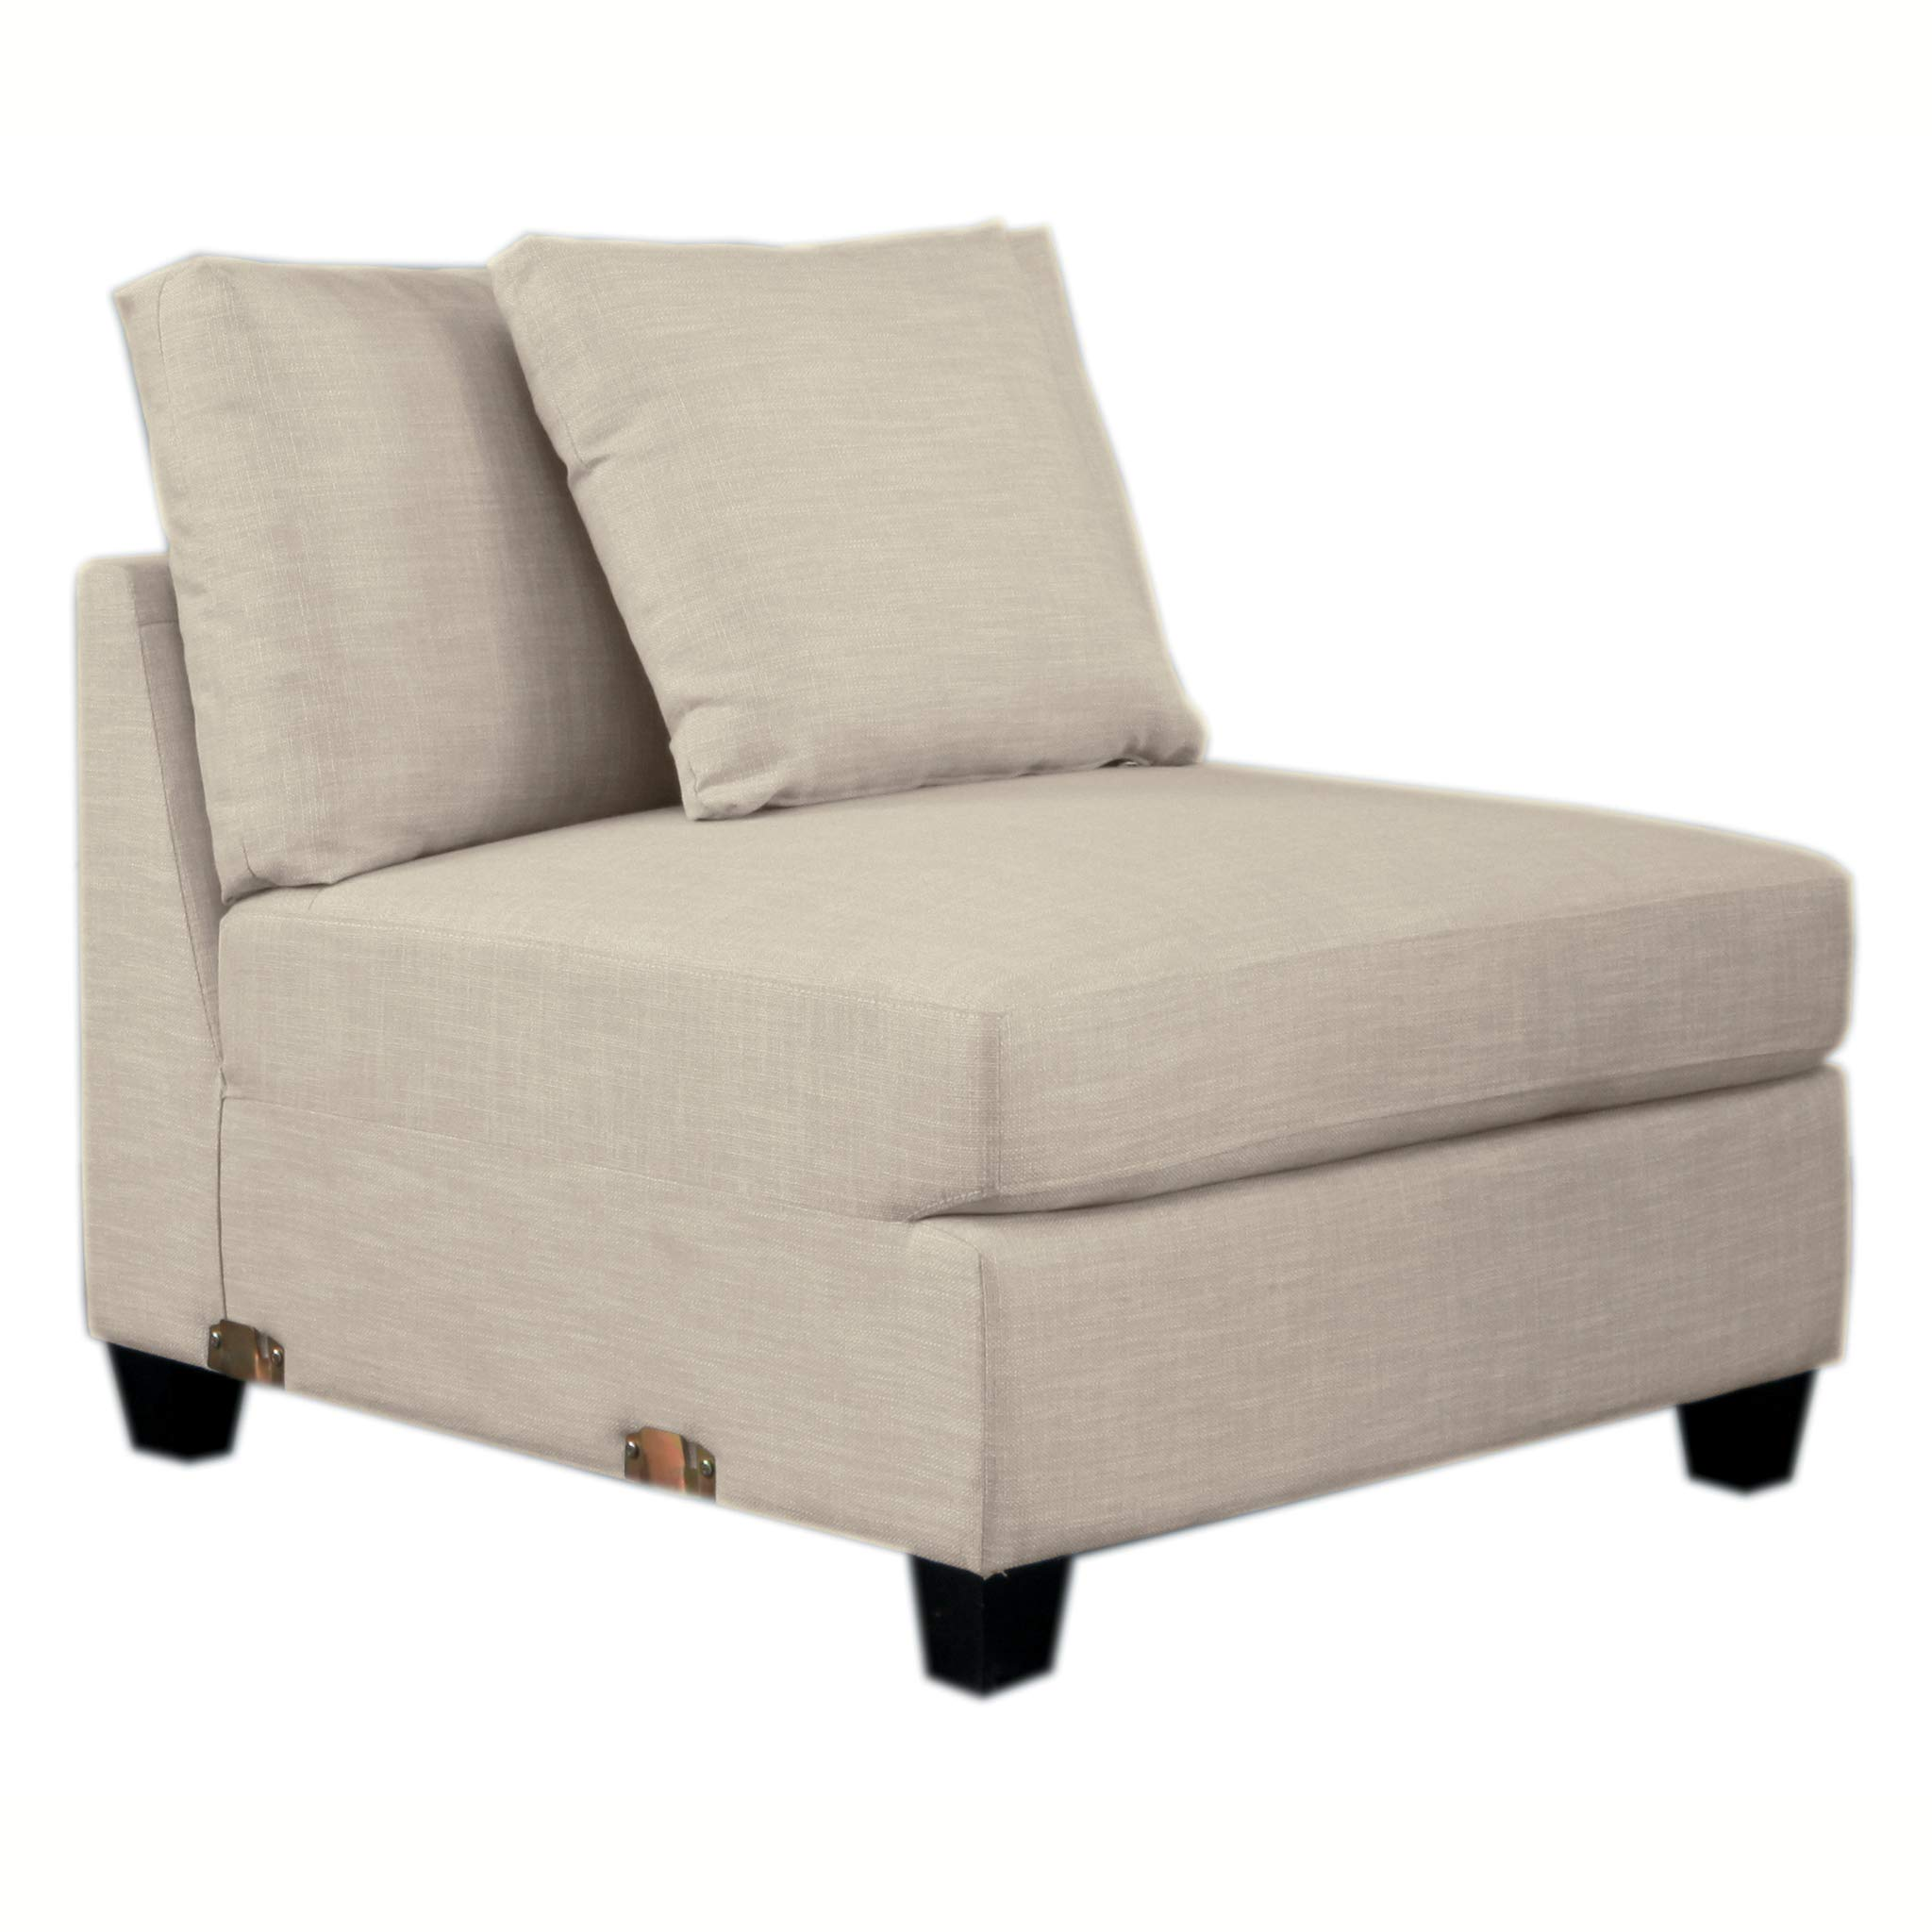 Homelegance Southgate Modular Sectional Unit, Armless Chair, Beige by Homelegance